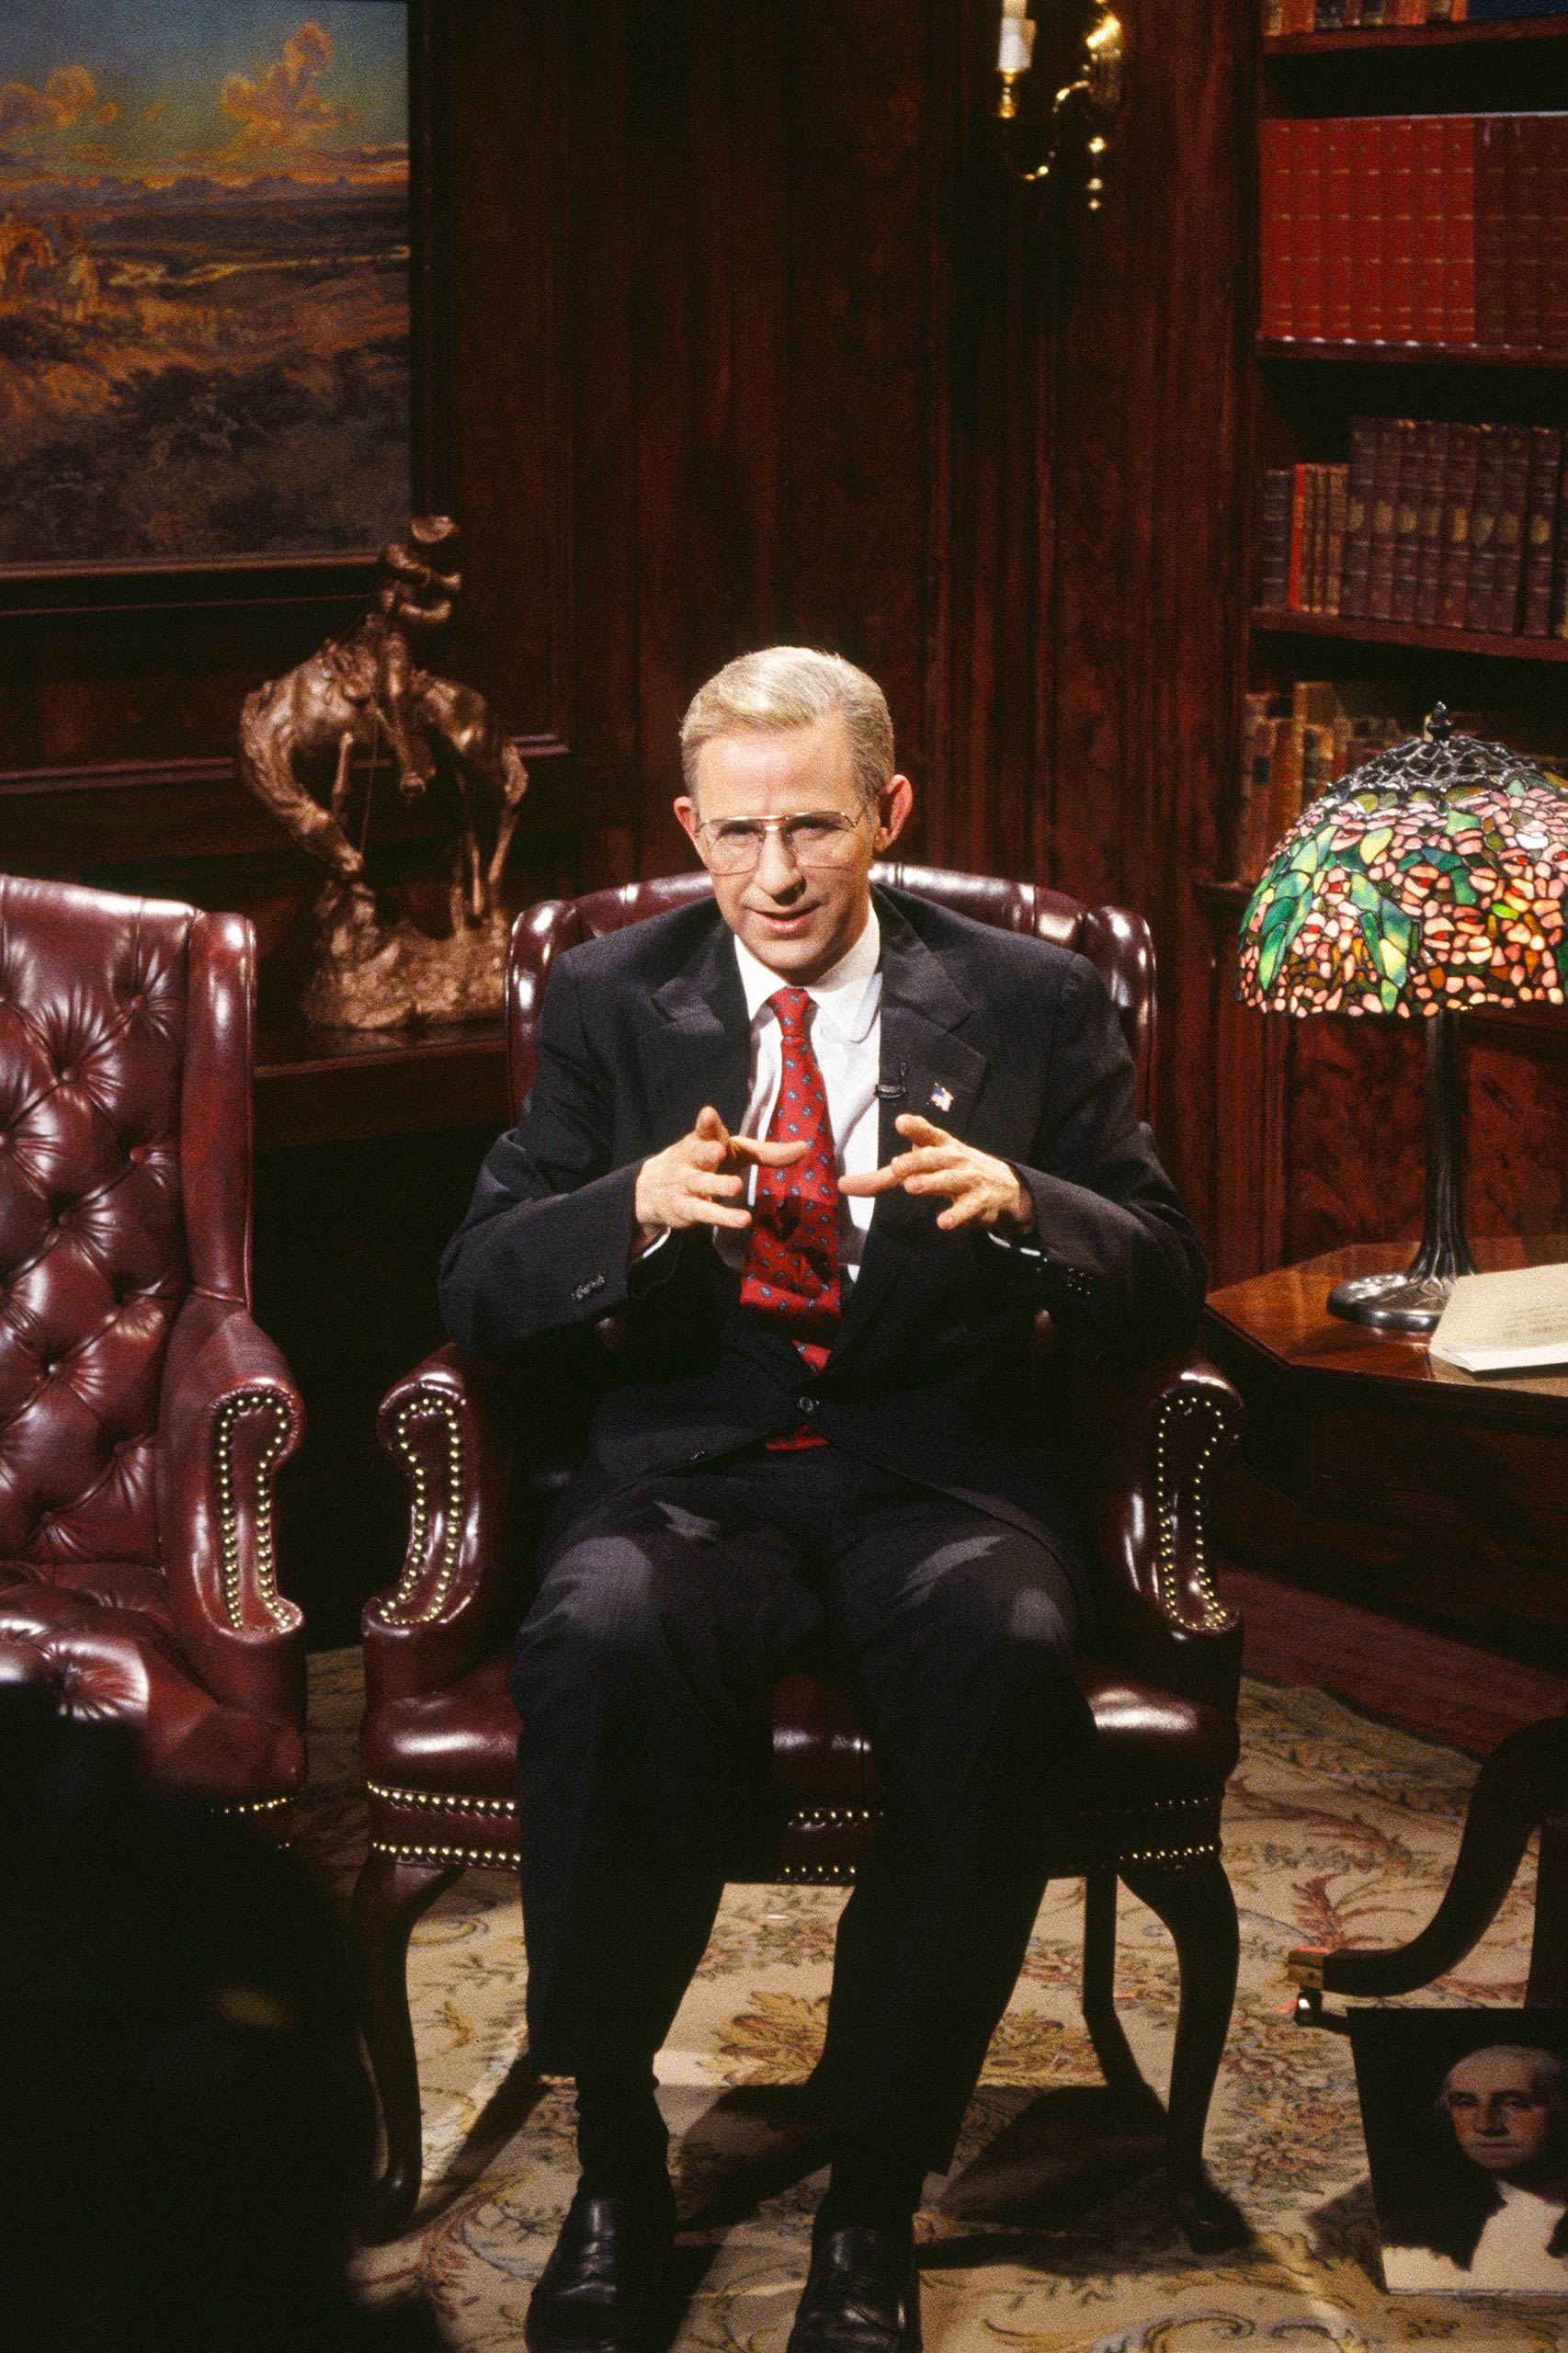 Dana Carvey as Ross Perot in 1993.